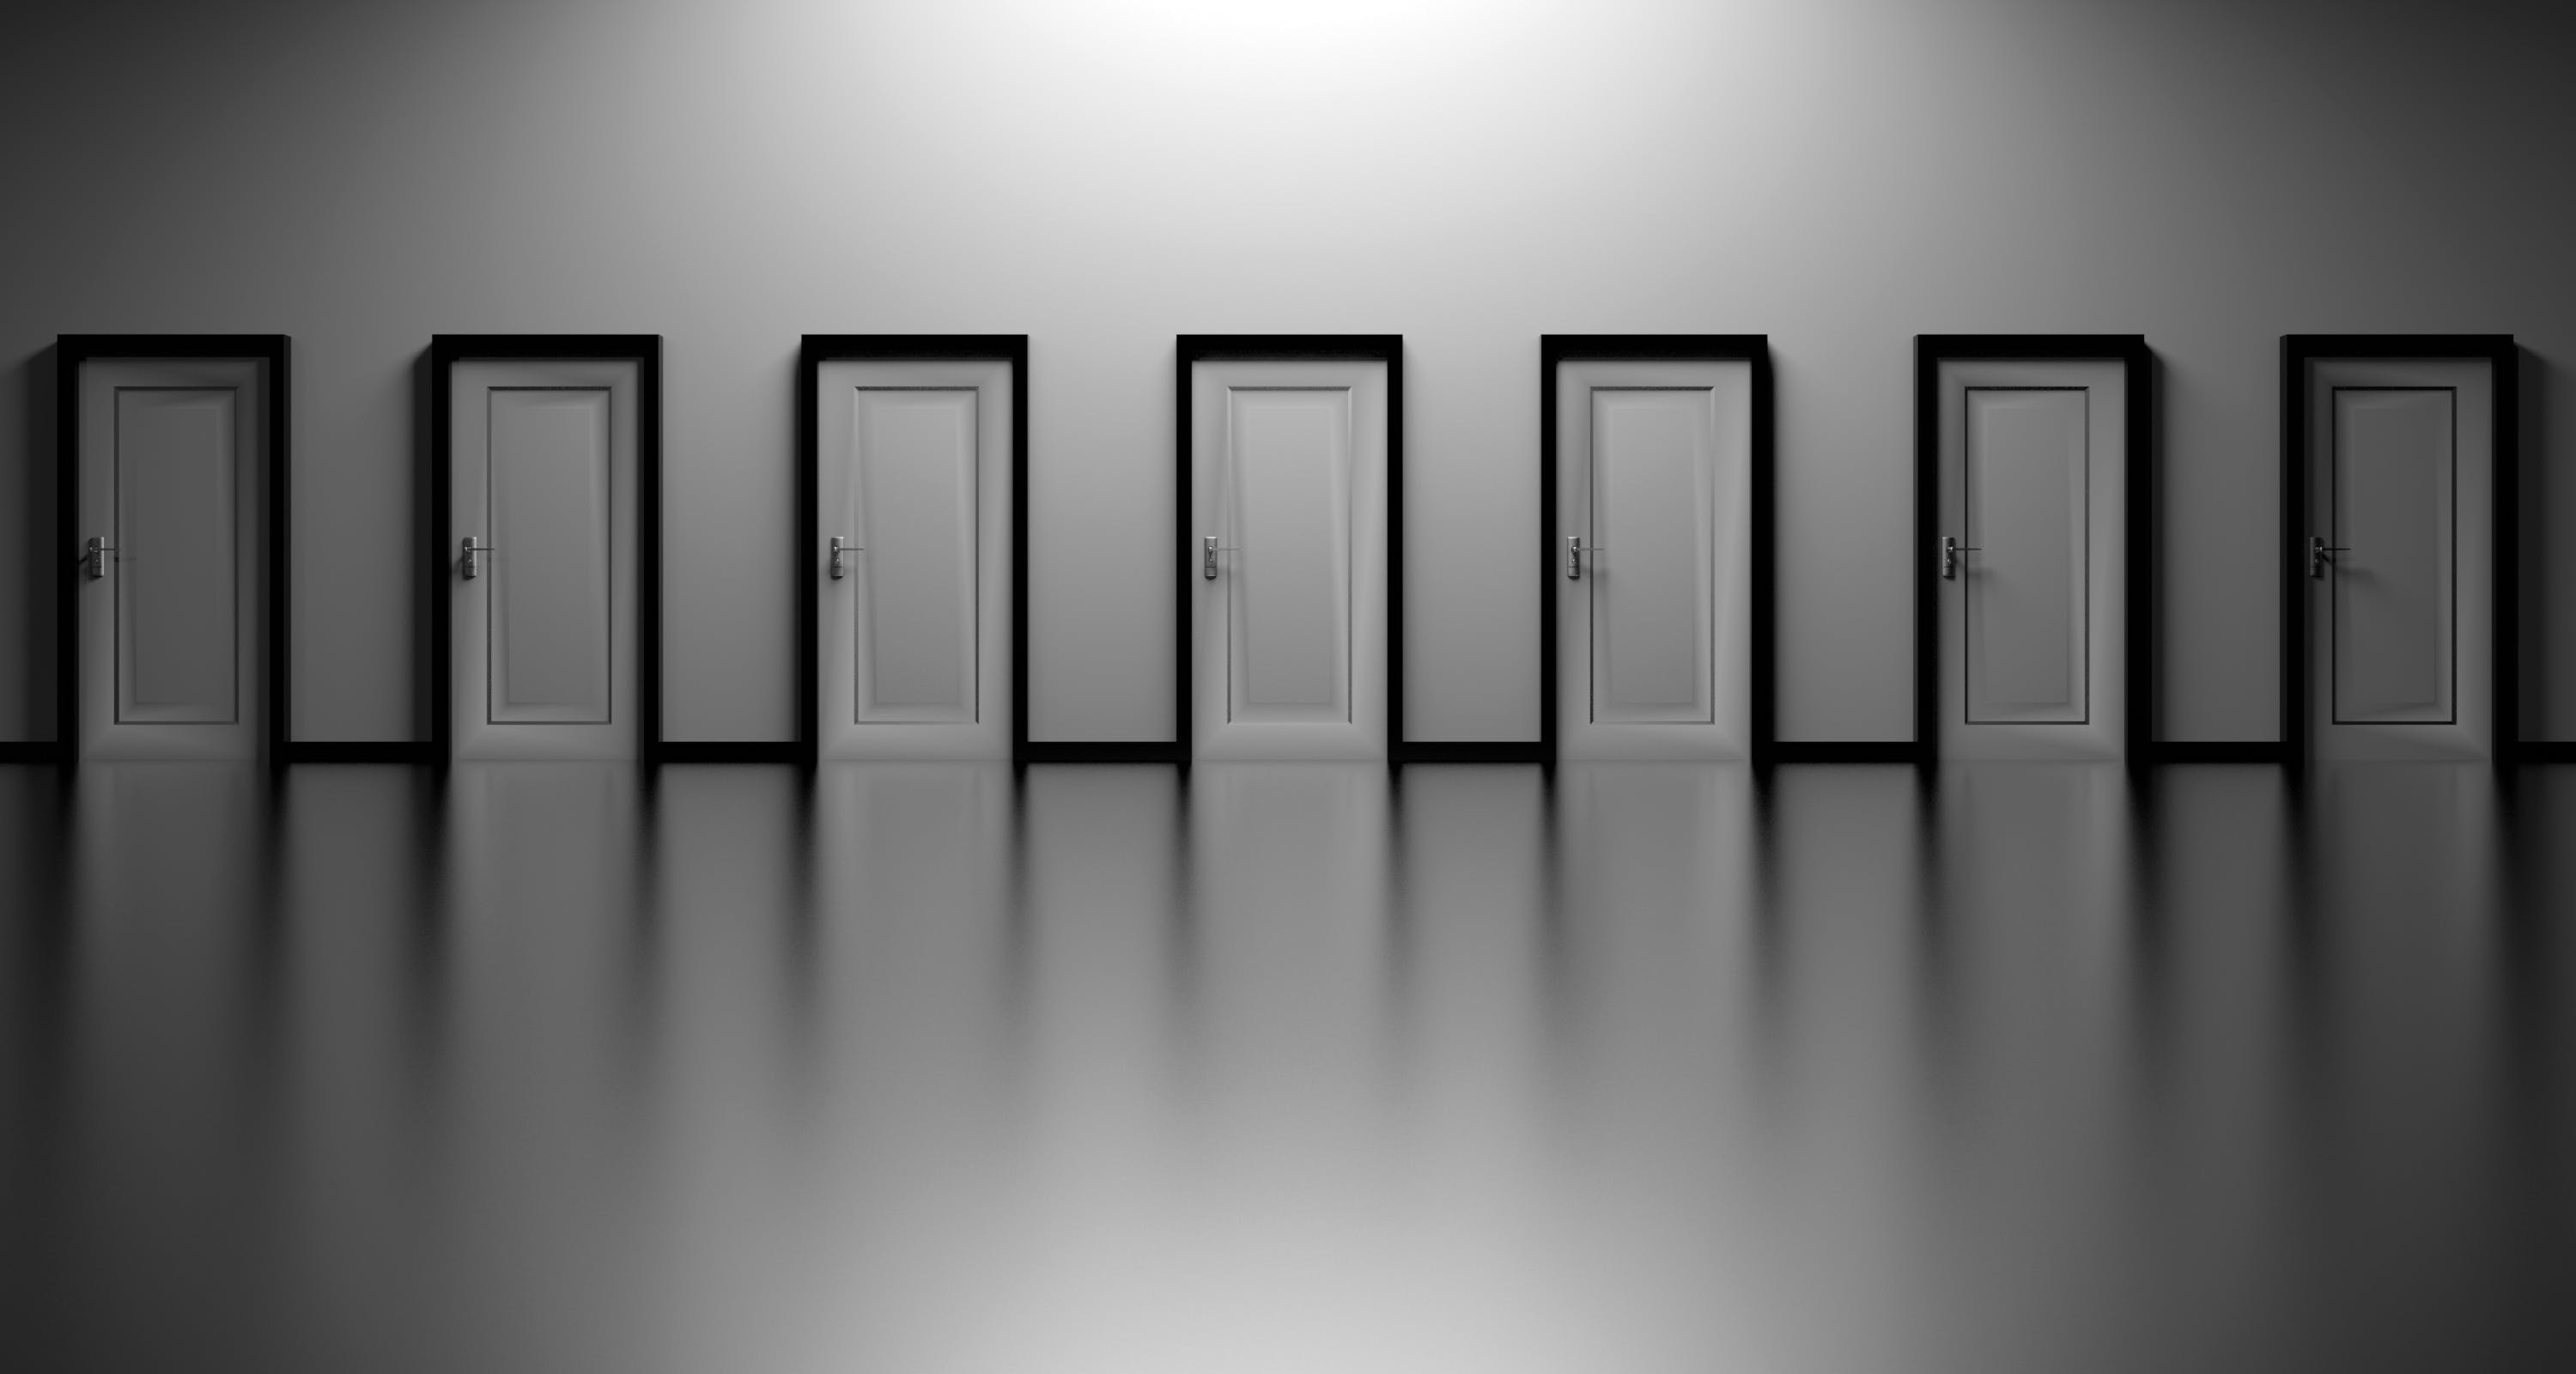 black-and-white, decision, doors